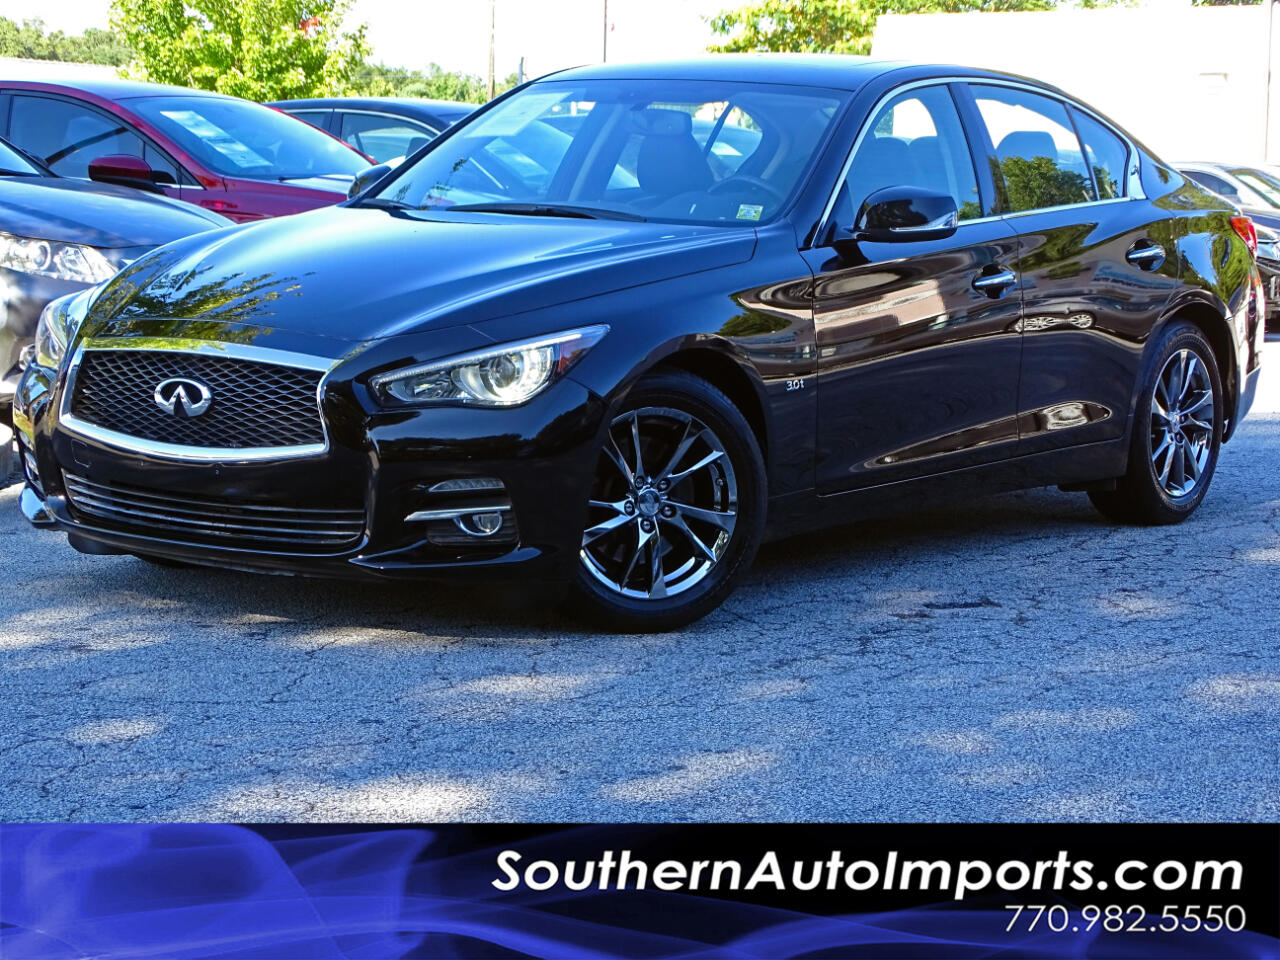 2017 Infiniti Q50 3.0t Signature Edition AWD